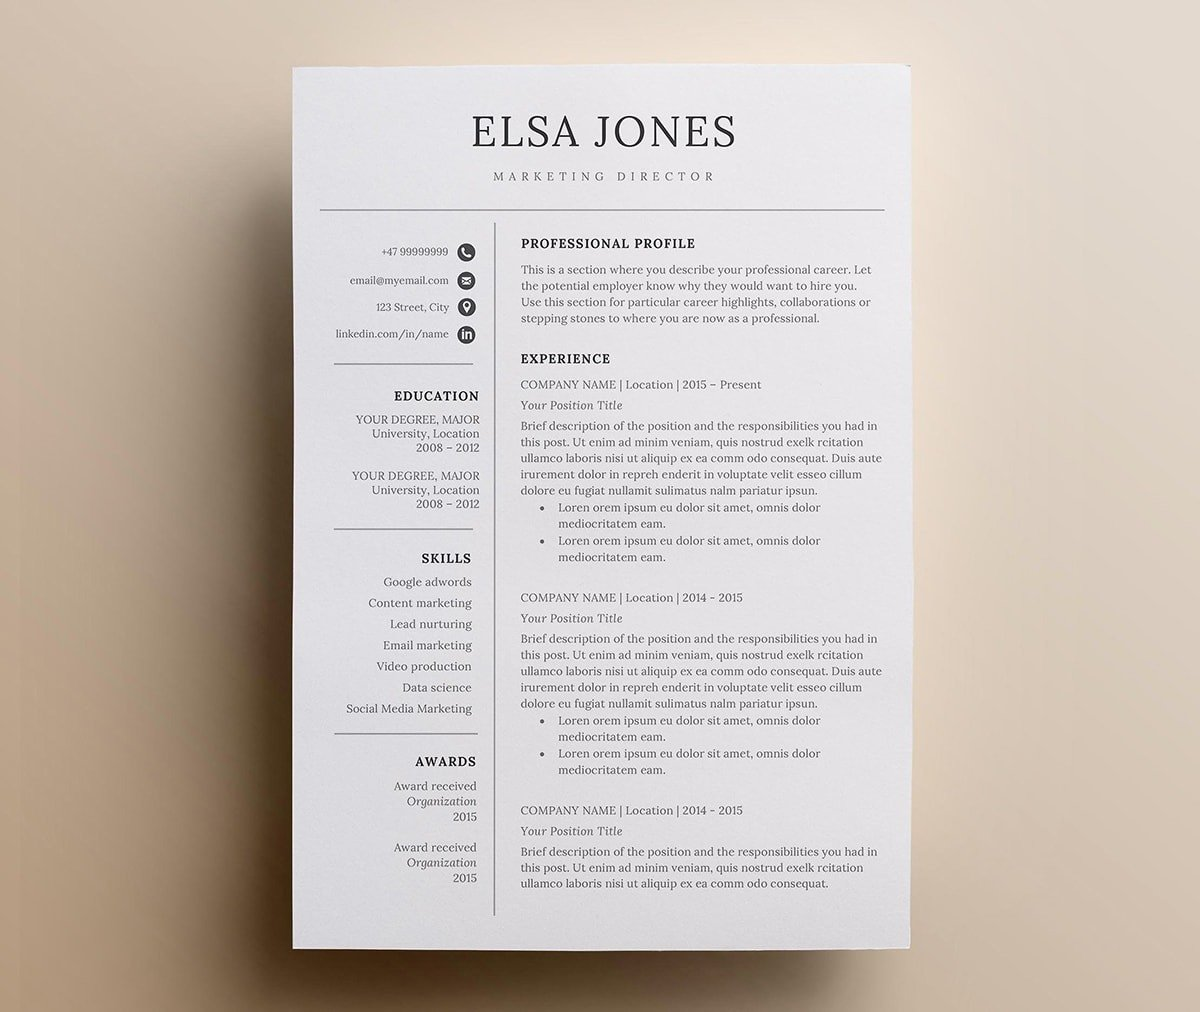 clean minimalist resume templates sleek design word template ender print email body for Resume Minimalist Word Resume Template